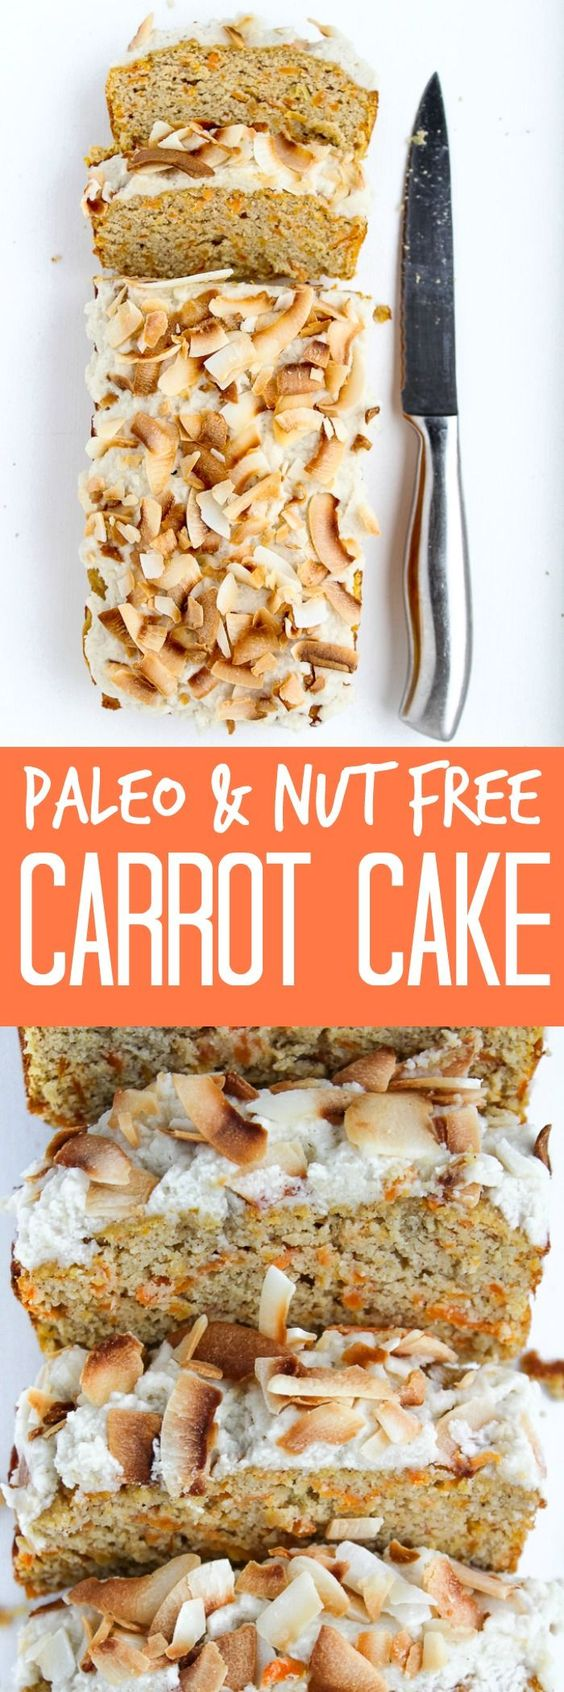 Paleo carrot cake, Nut free and Carrot cakes on Pinterest